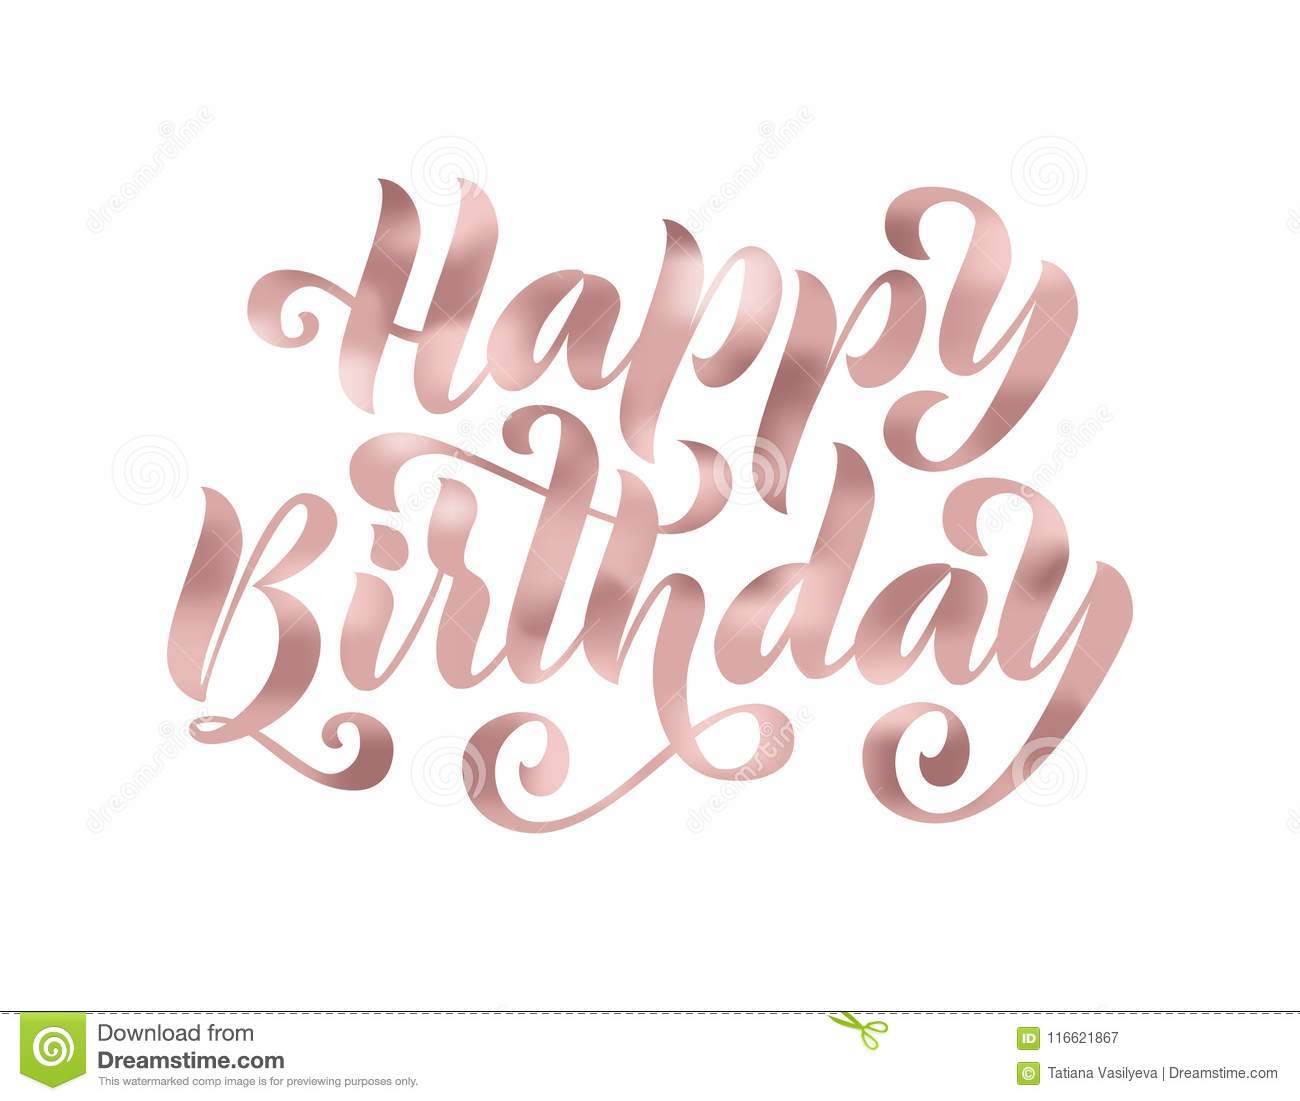 Happy Birthday Hand Drawn Lettering Card Modern Brush Calligraphy Vector Illustration Rose Gold Glitter Text